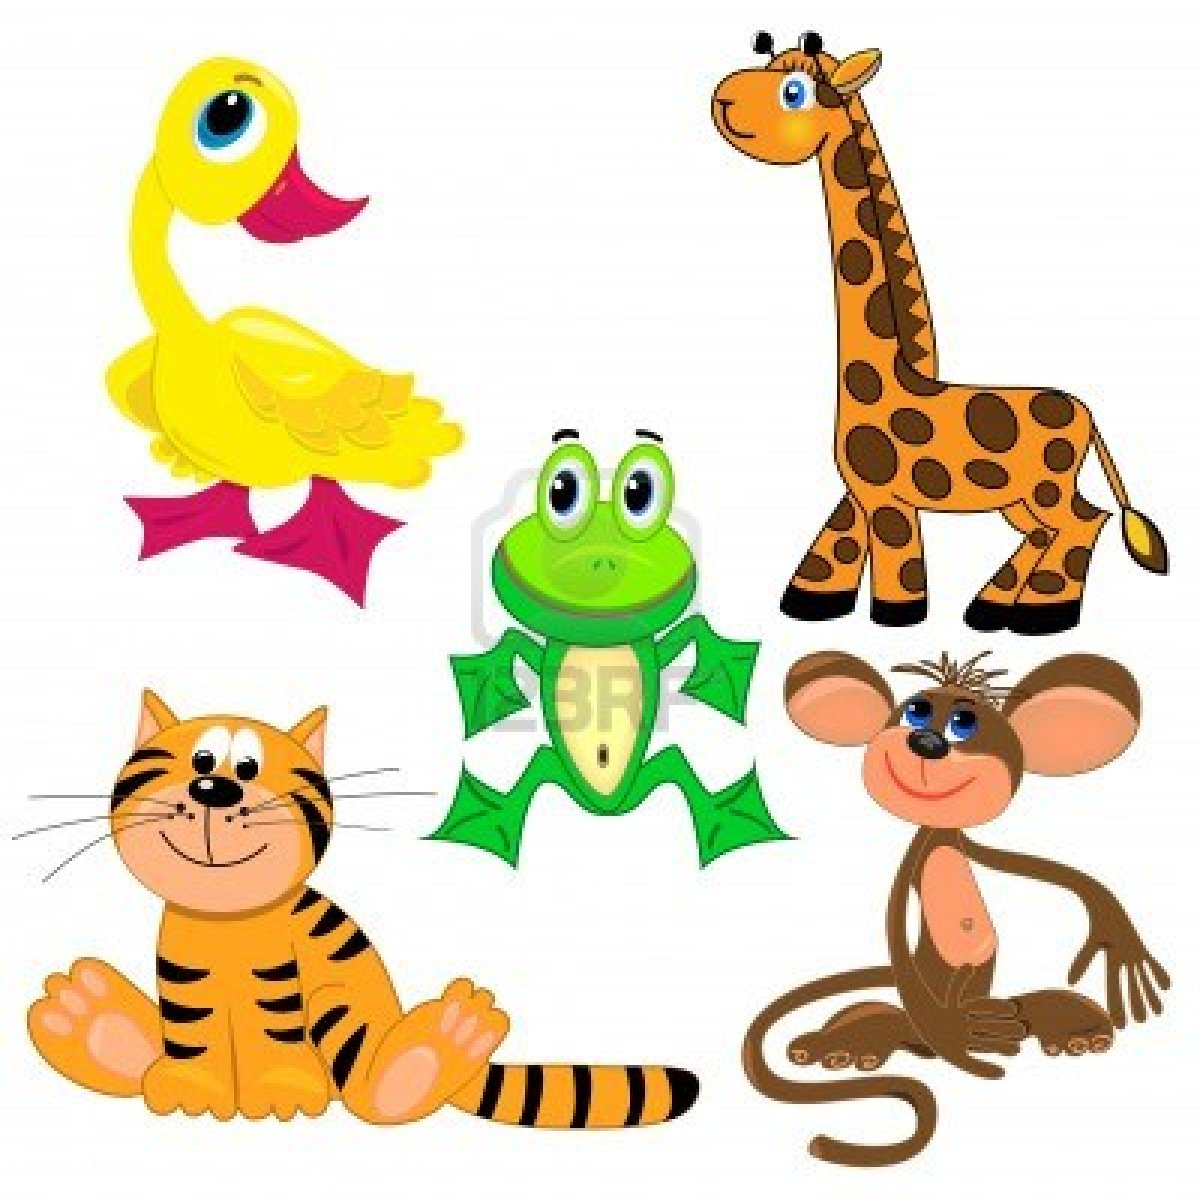 Zoo clipart cute animal Large Free clipart for animals